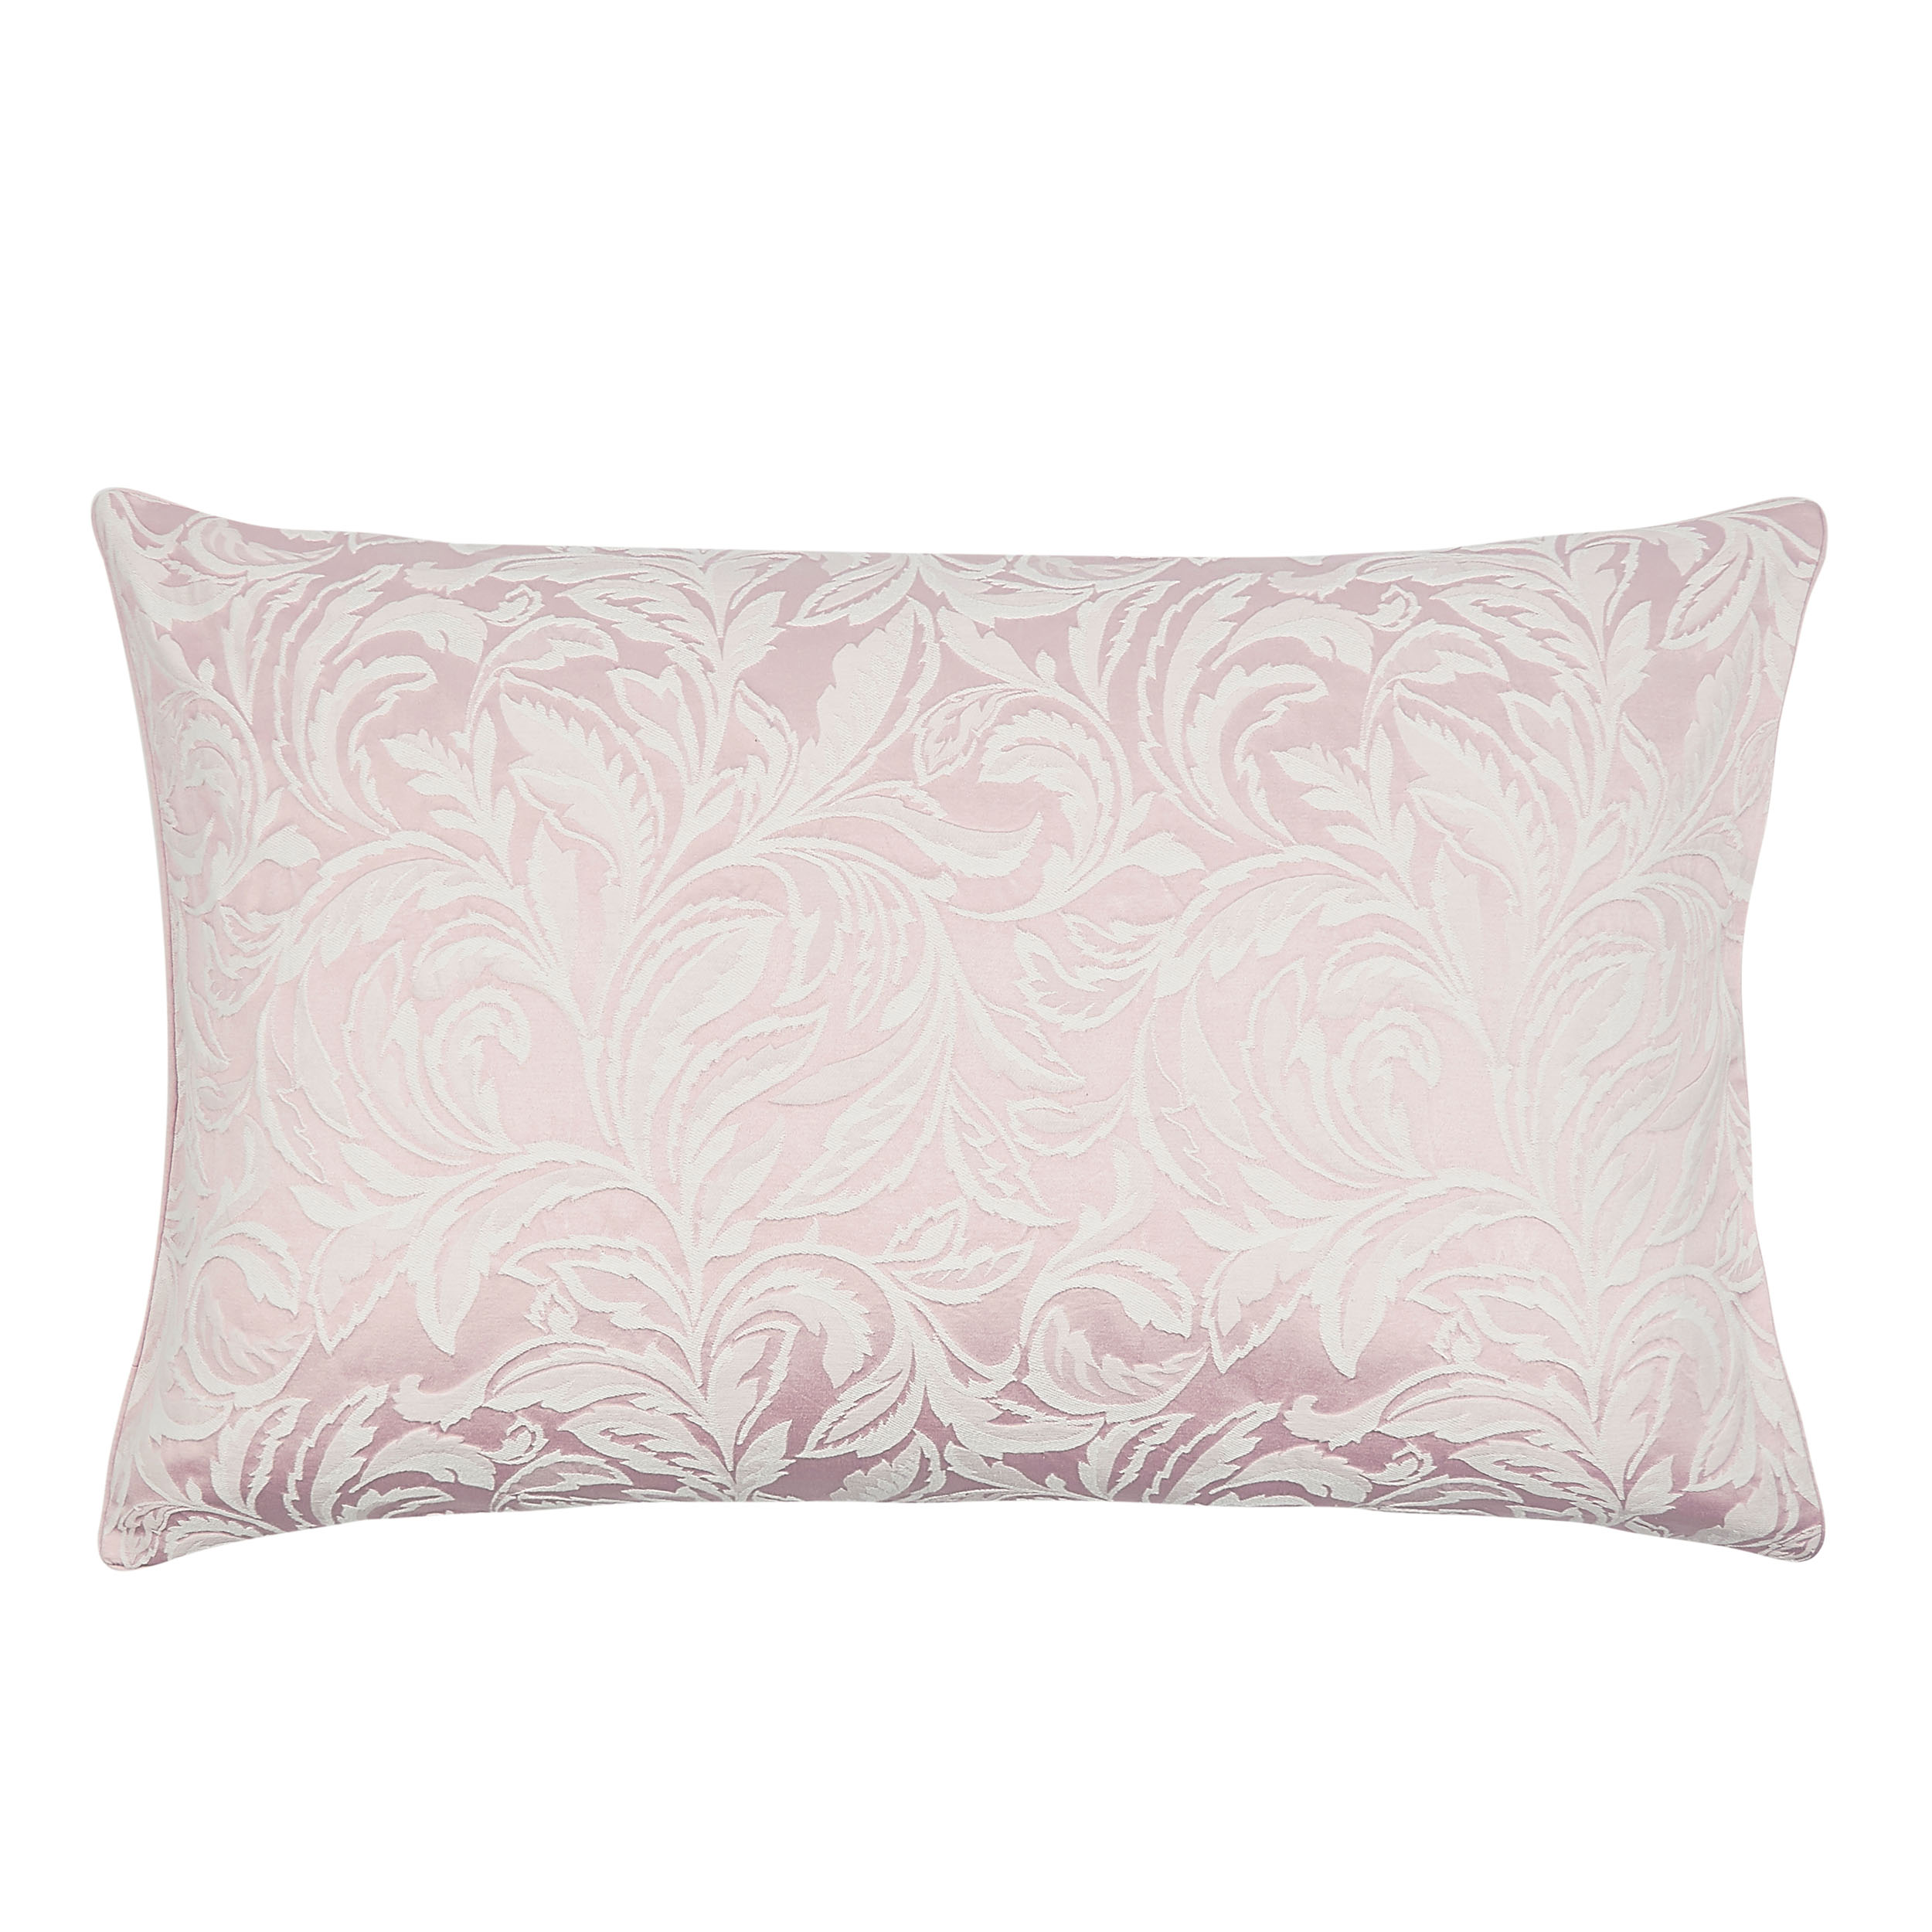 Fowey Jacquard blush Housewife pillowcase, £22, Laura Ashley